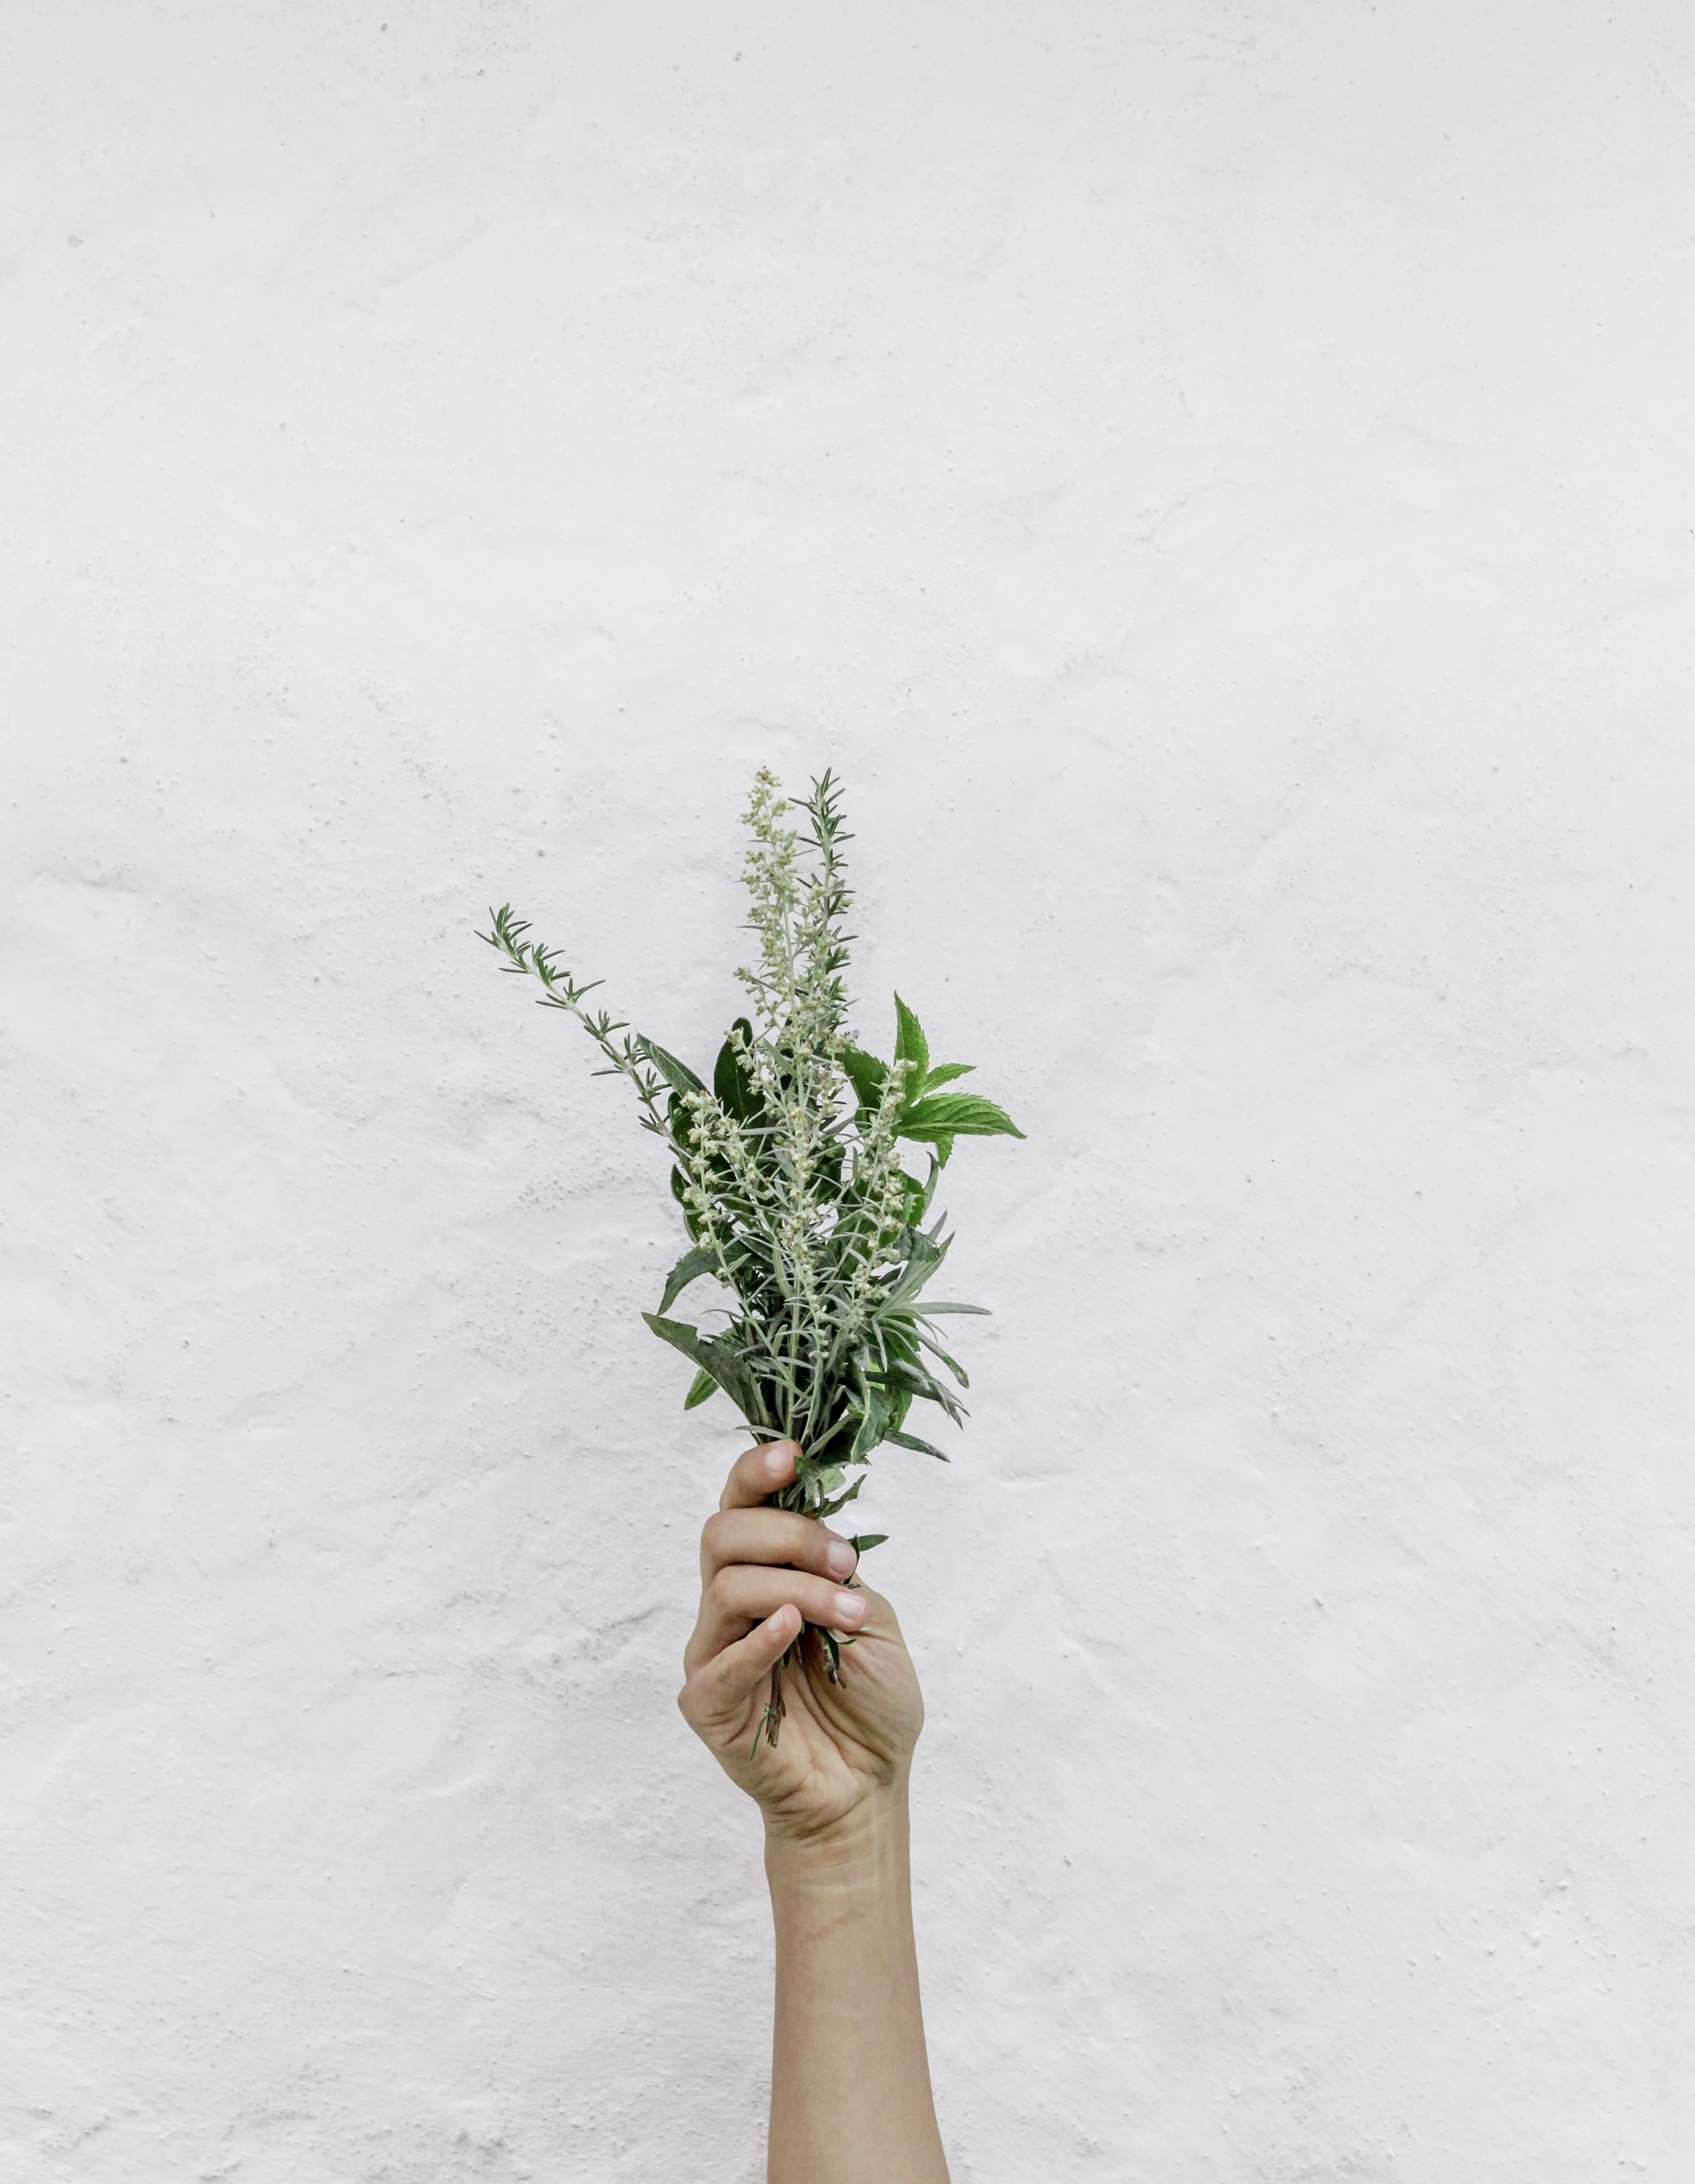 herbalism pic hand with herbs CROPPED.jpg